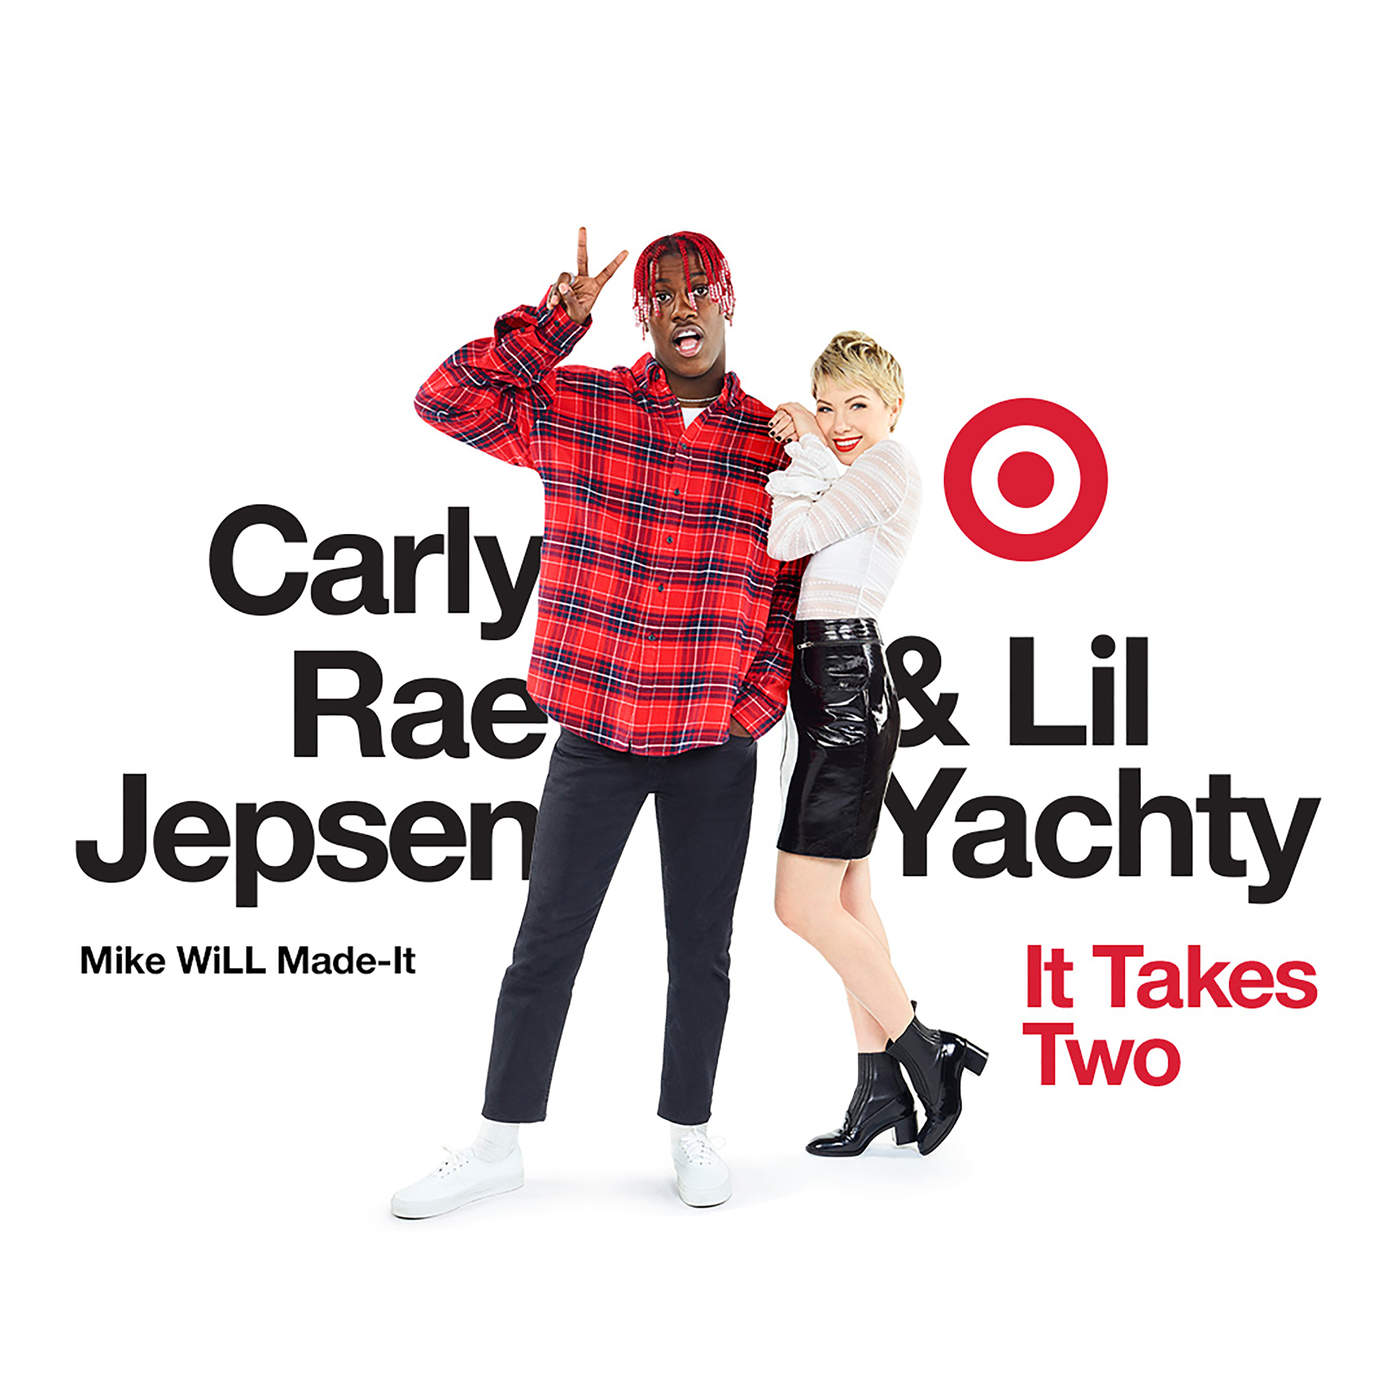 lil yachty it takes two